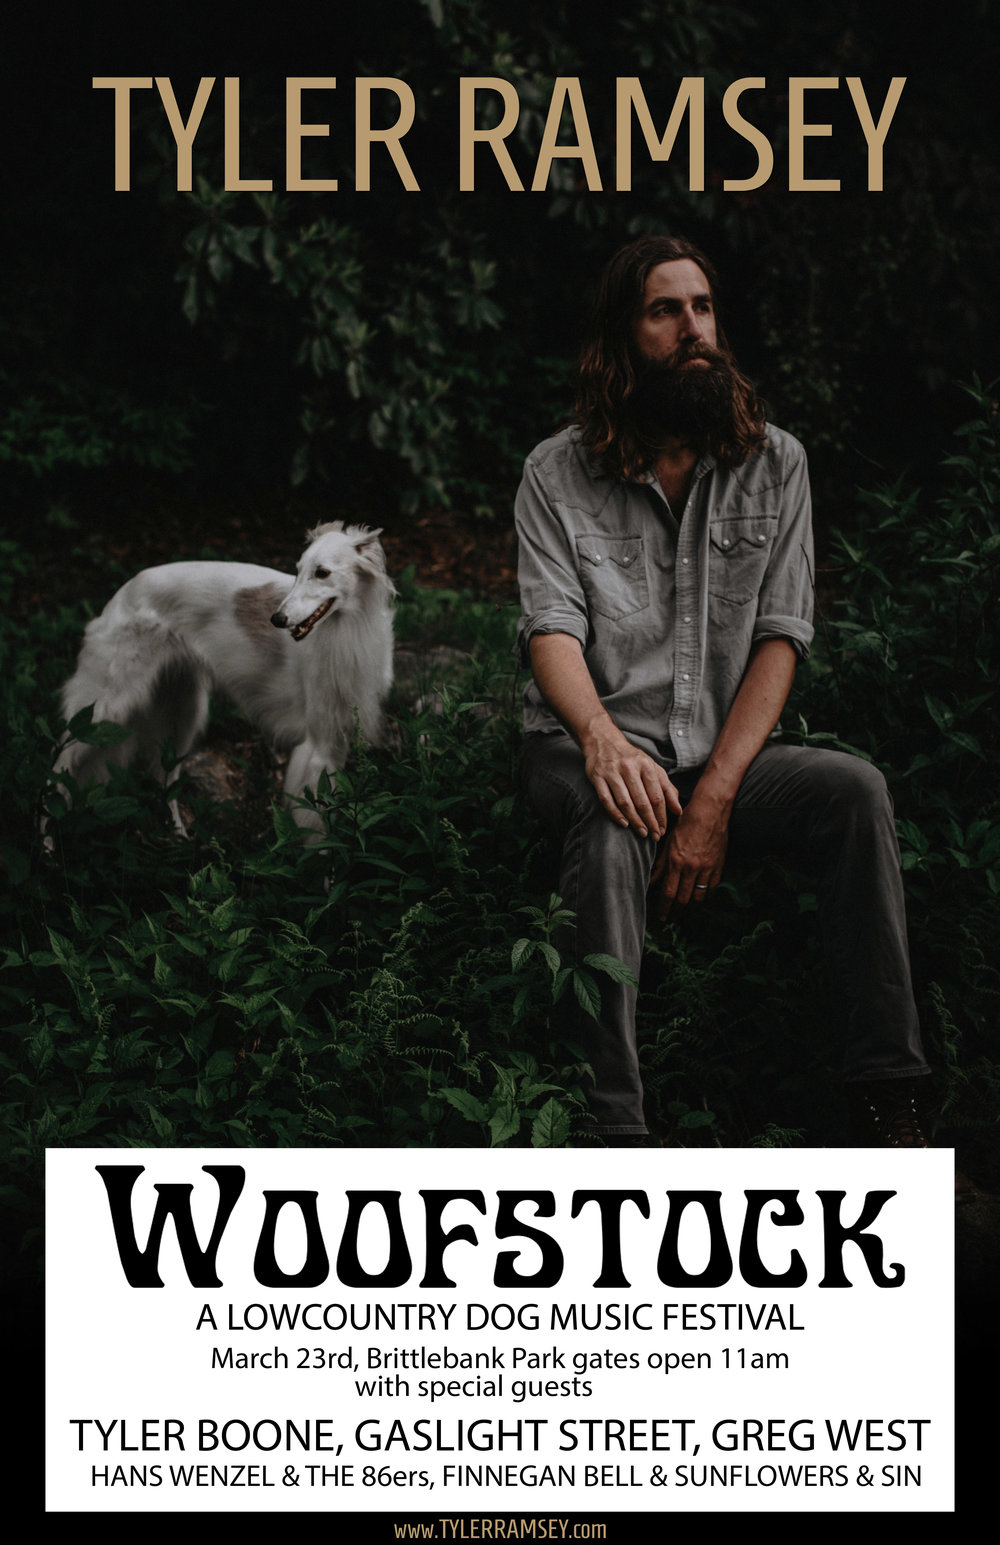 Tyler Ramsey, formerly of Band of Horses will be headlining Woofstock.